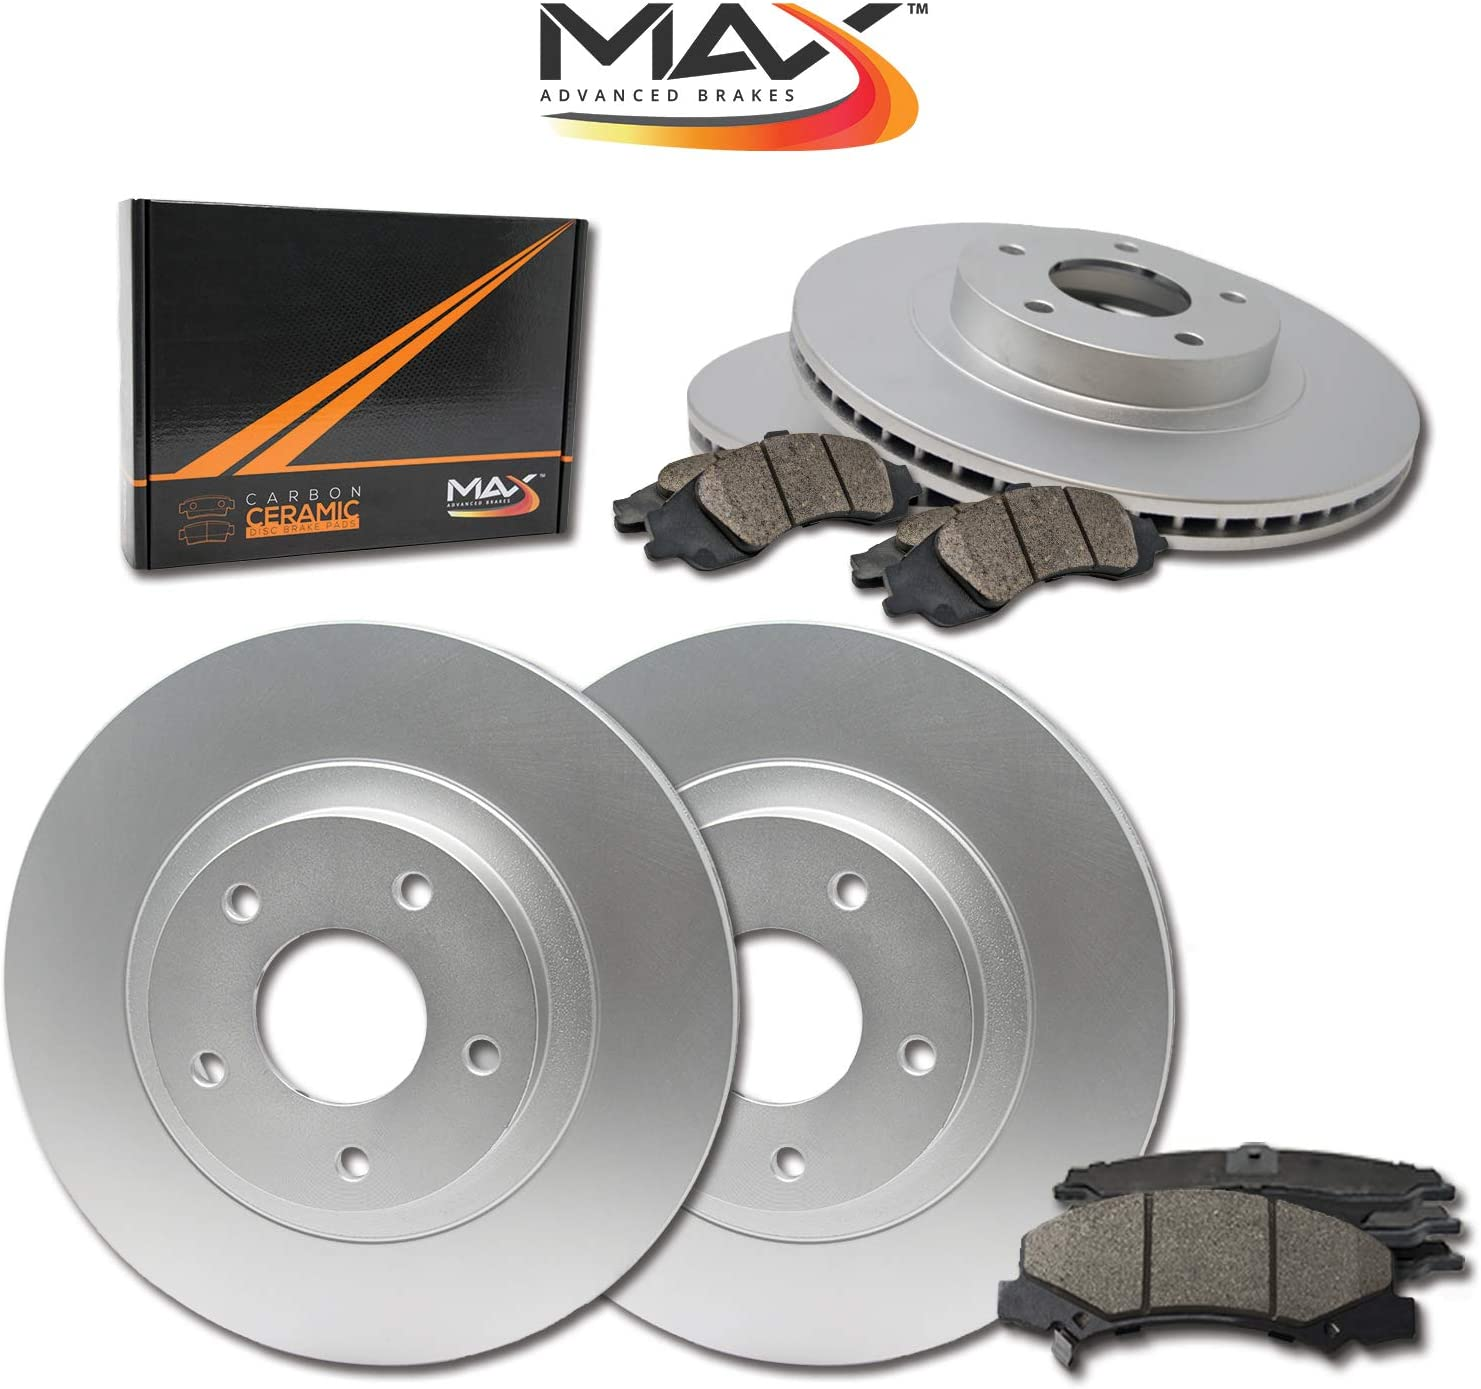 Max Brakes Geomet OE Rotors with Carbon Ceramic Pads KT069663 Front + Rear